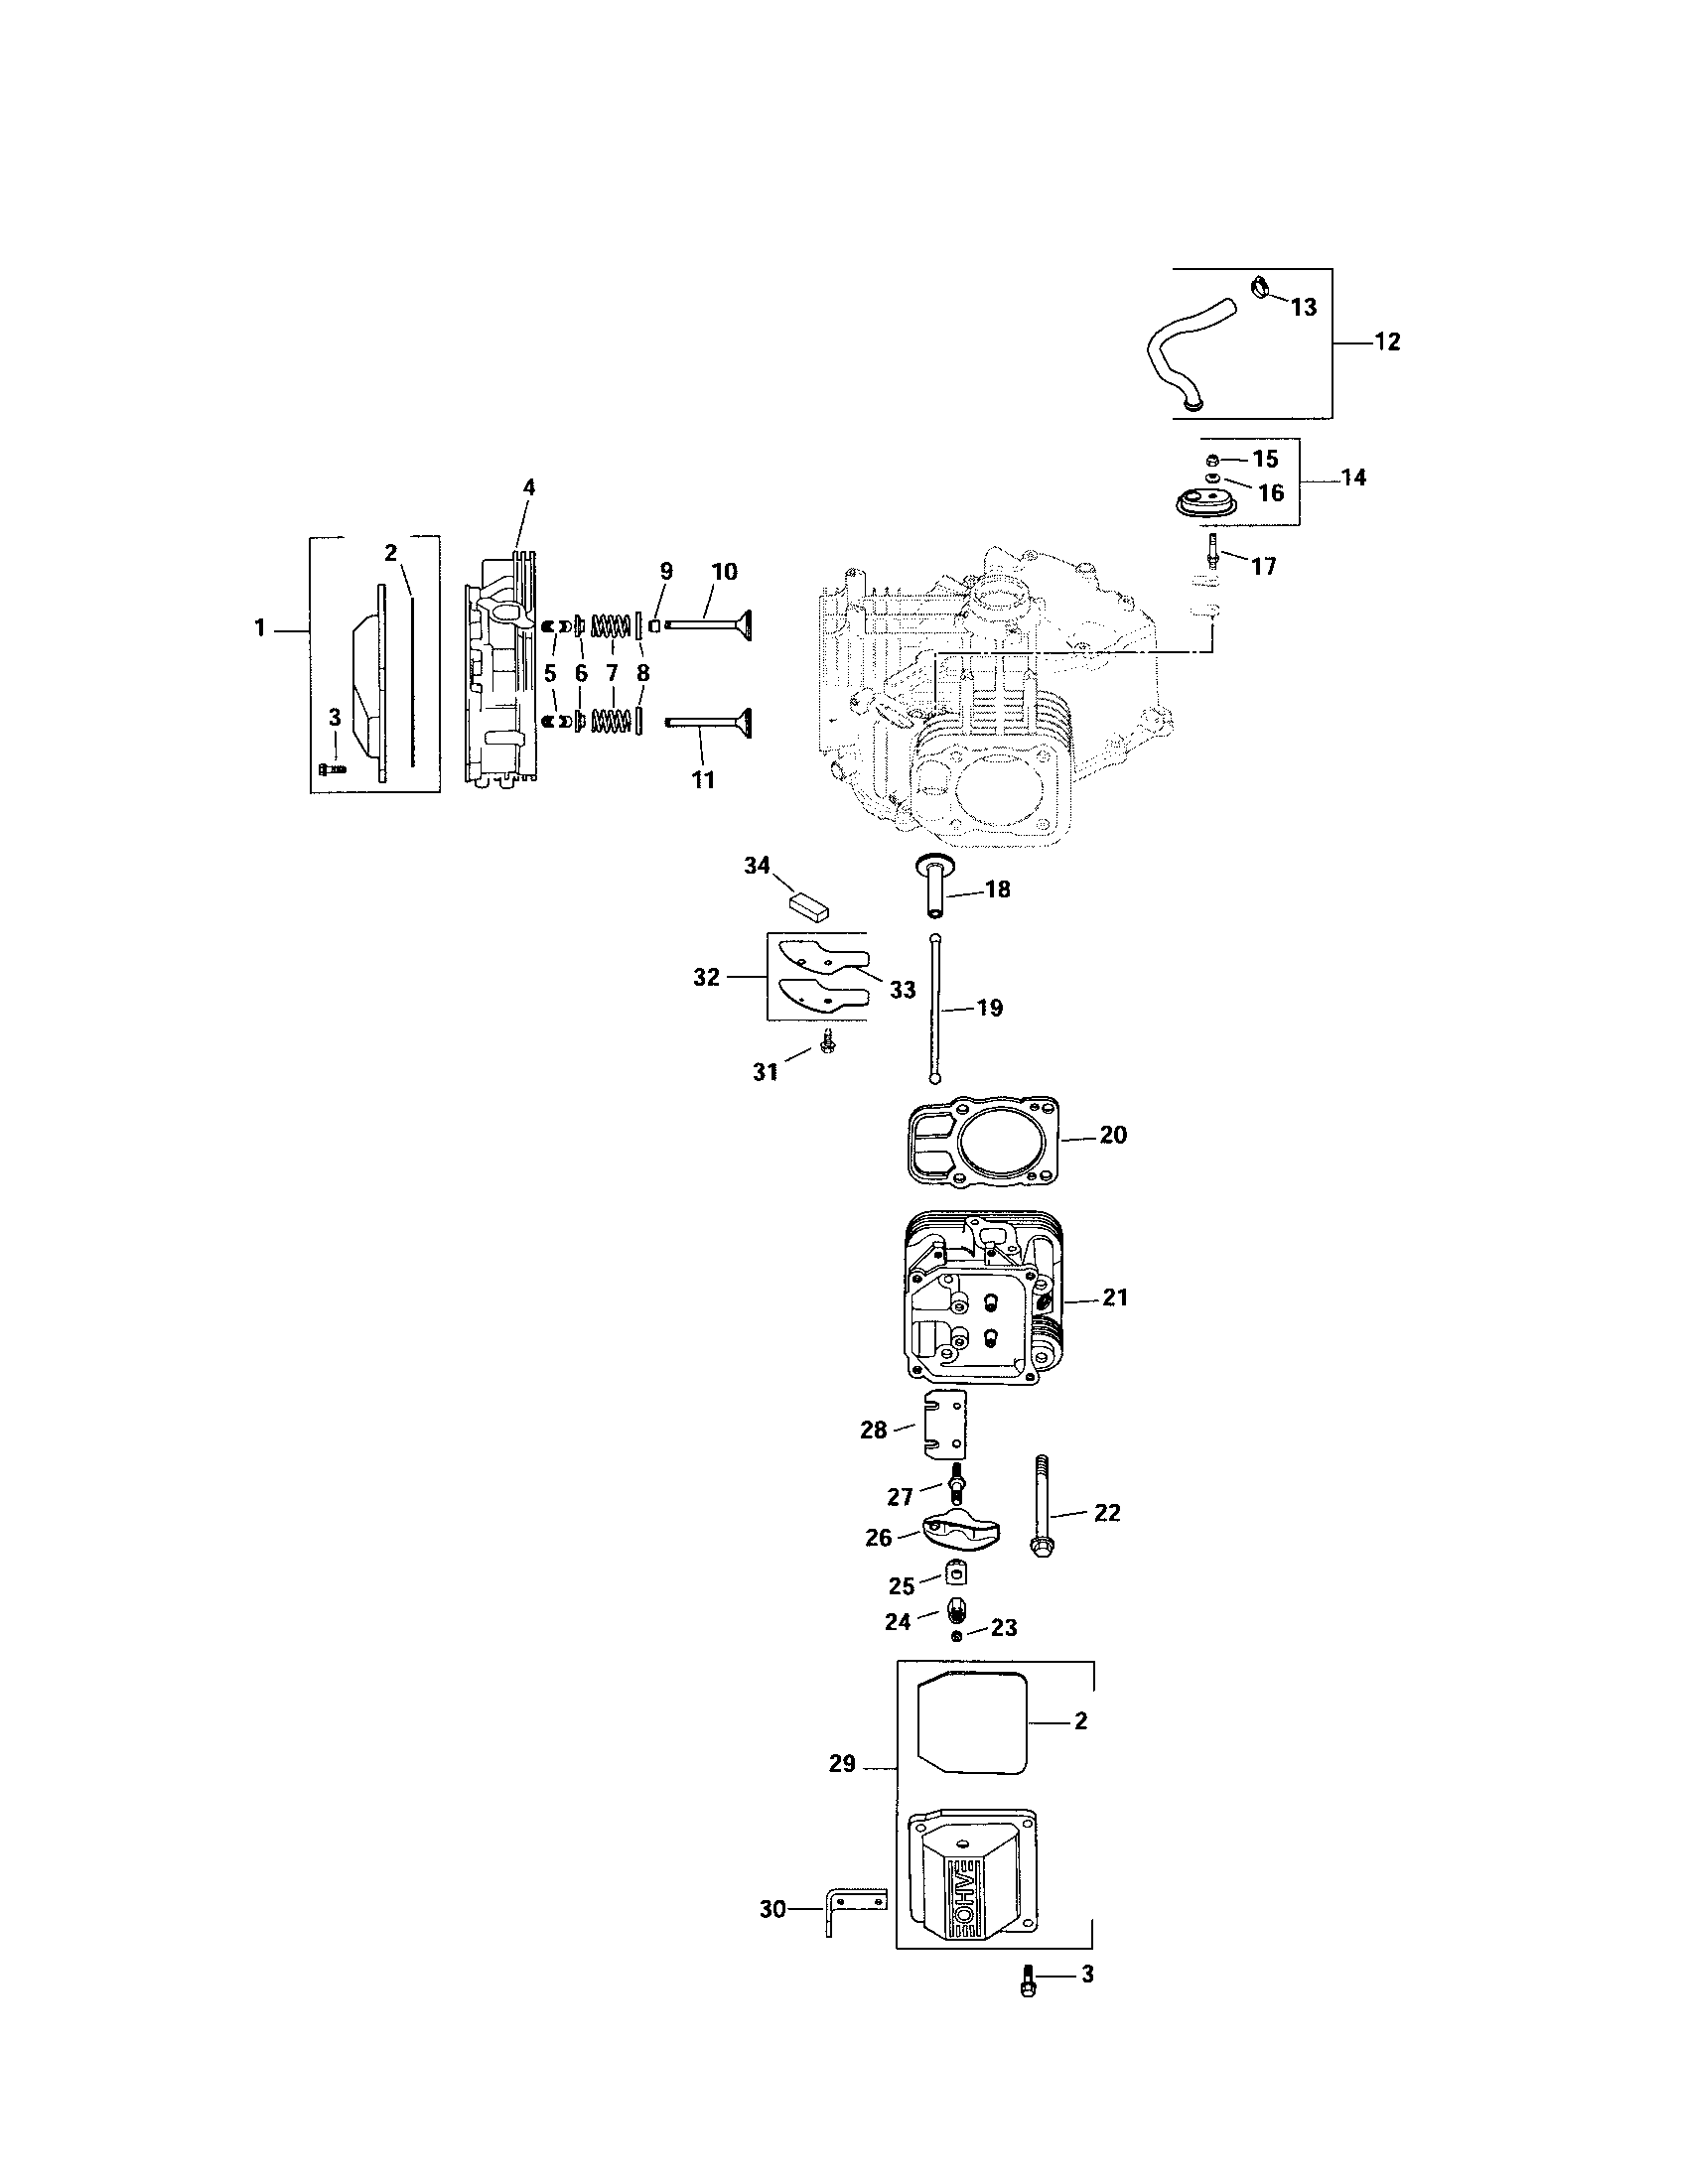 Kohler model SV735-0018 engine genuine parts